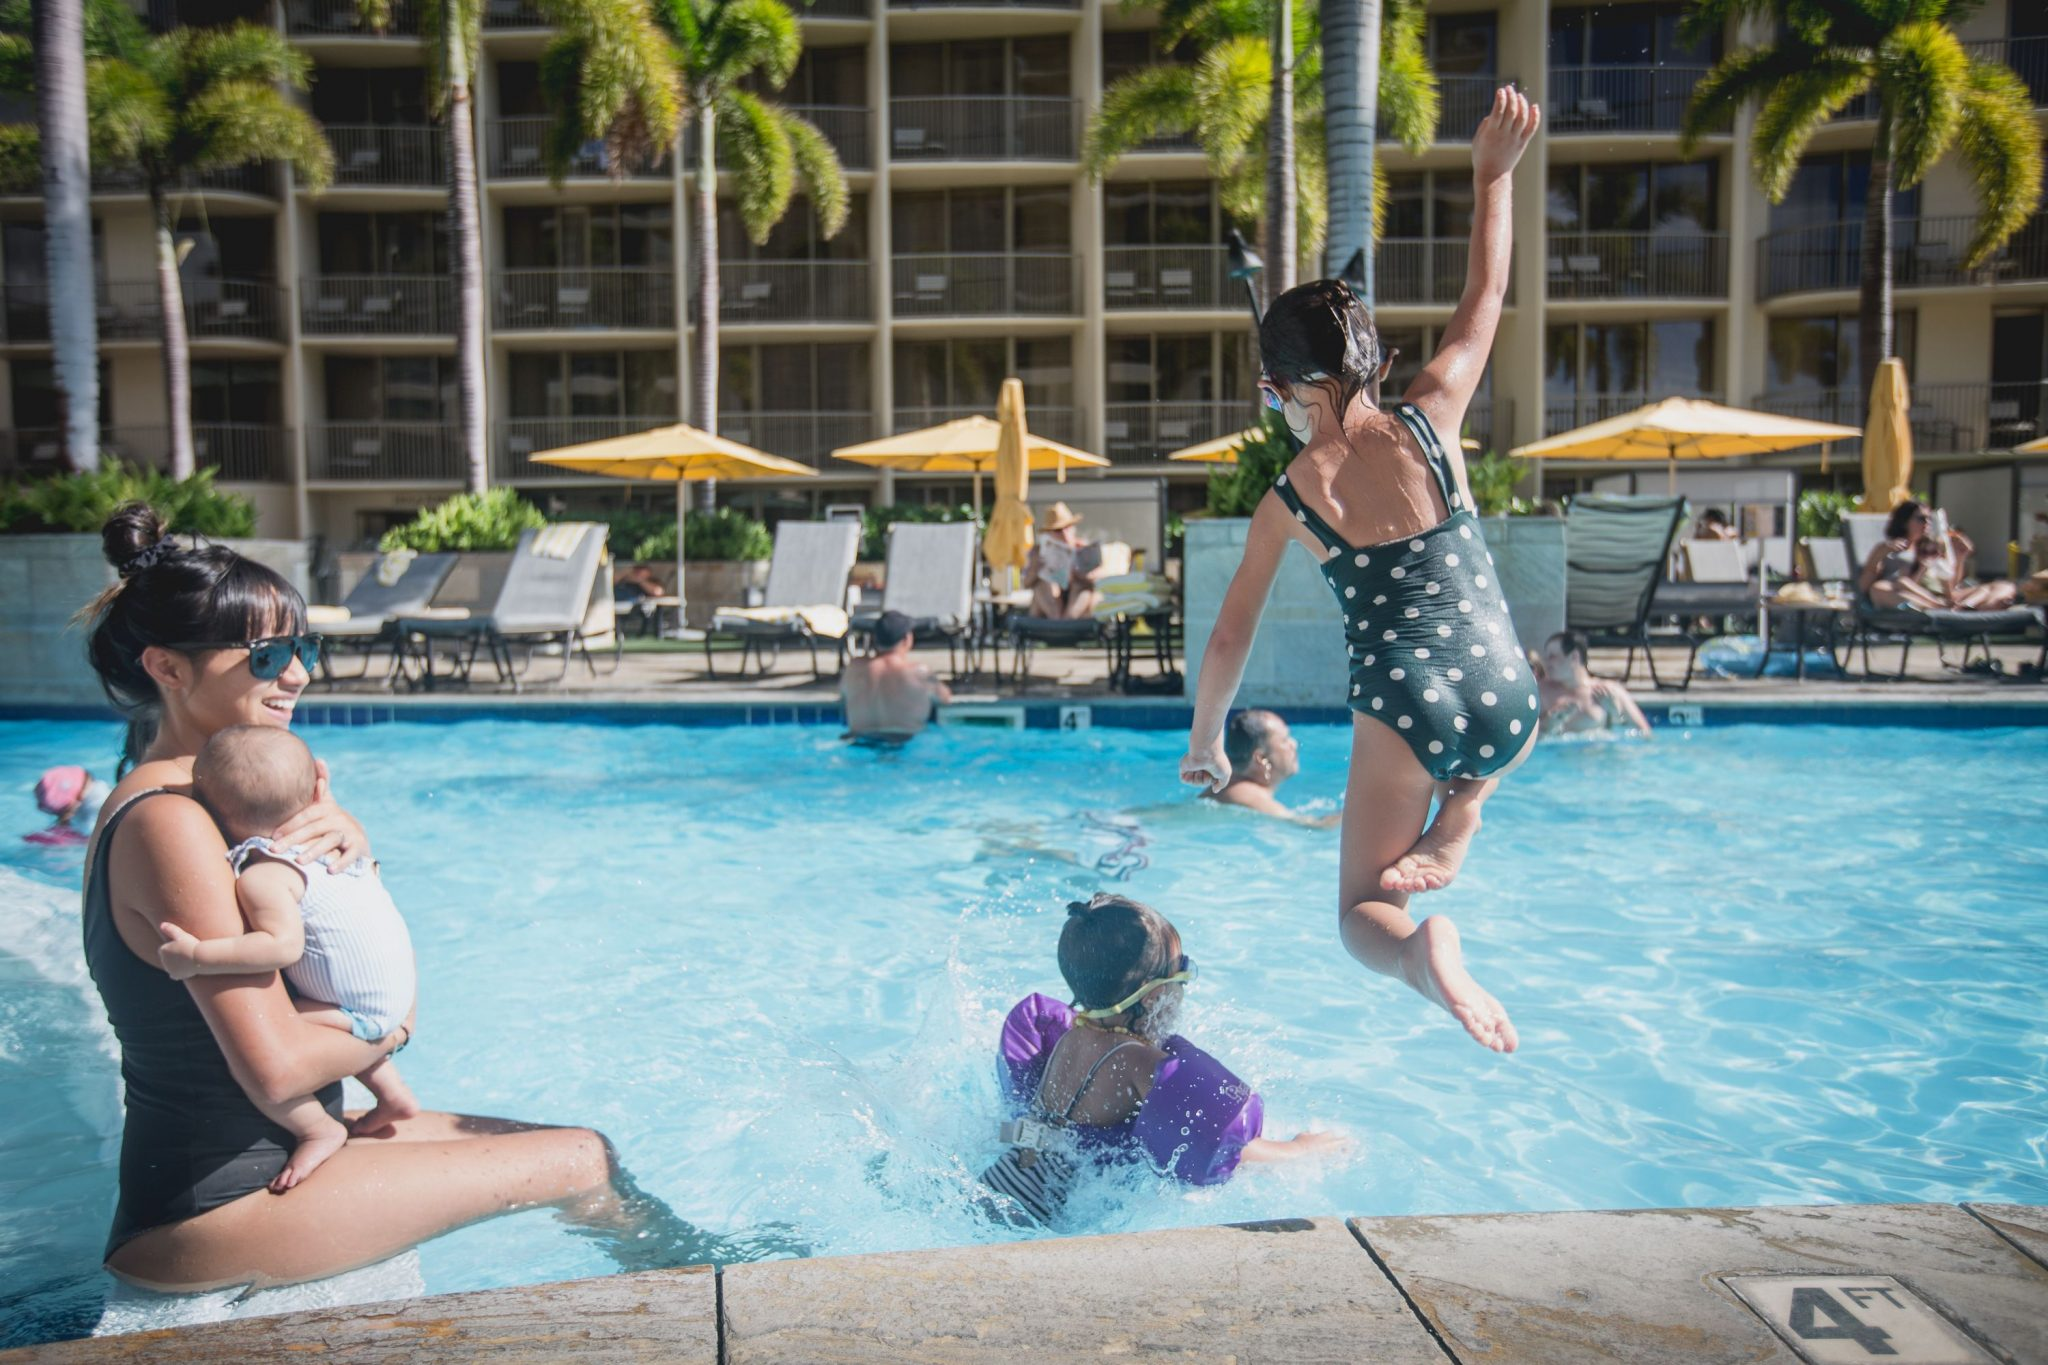 Embassy-Suites-Family-Photo-at-Pool-New